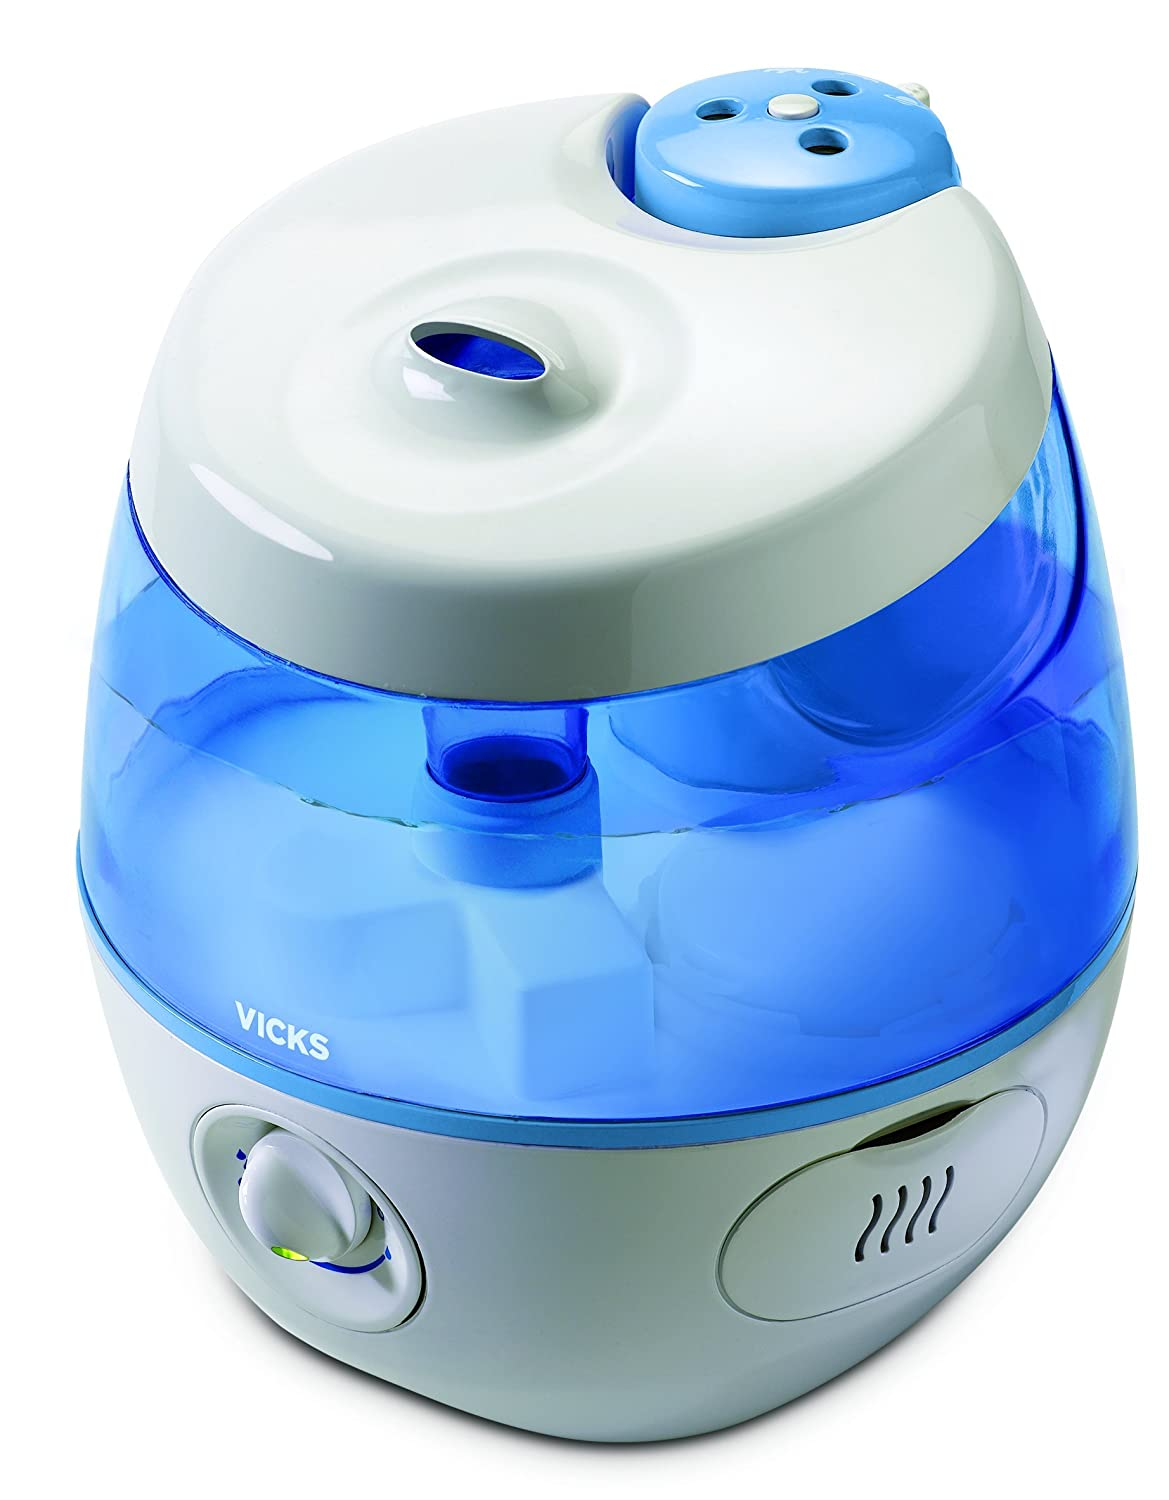 $49.97(was $59.88) Vicks SweetDreams Cool Mist Humidifier; Enchanting and Soothing Bedtime Environment